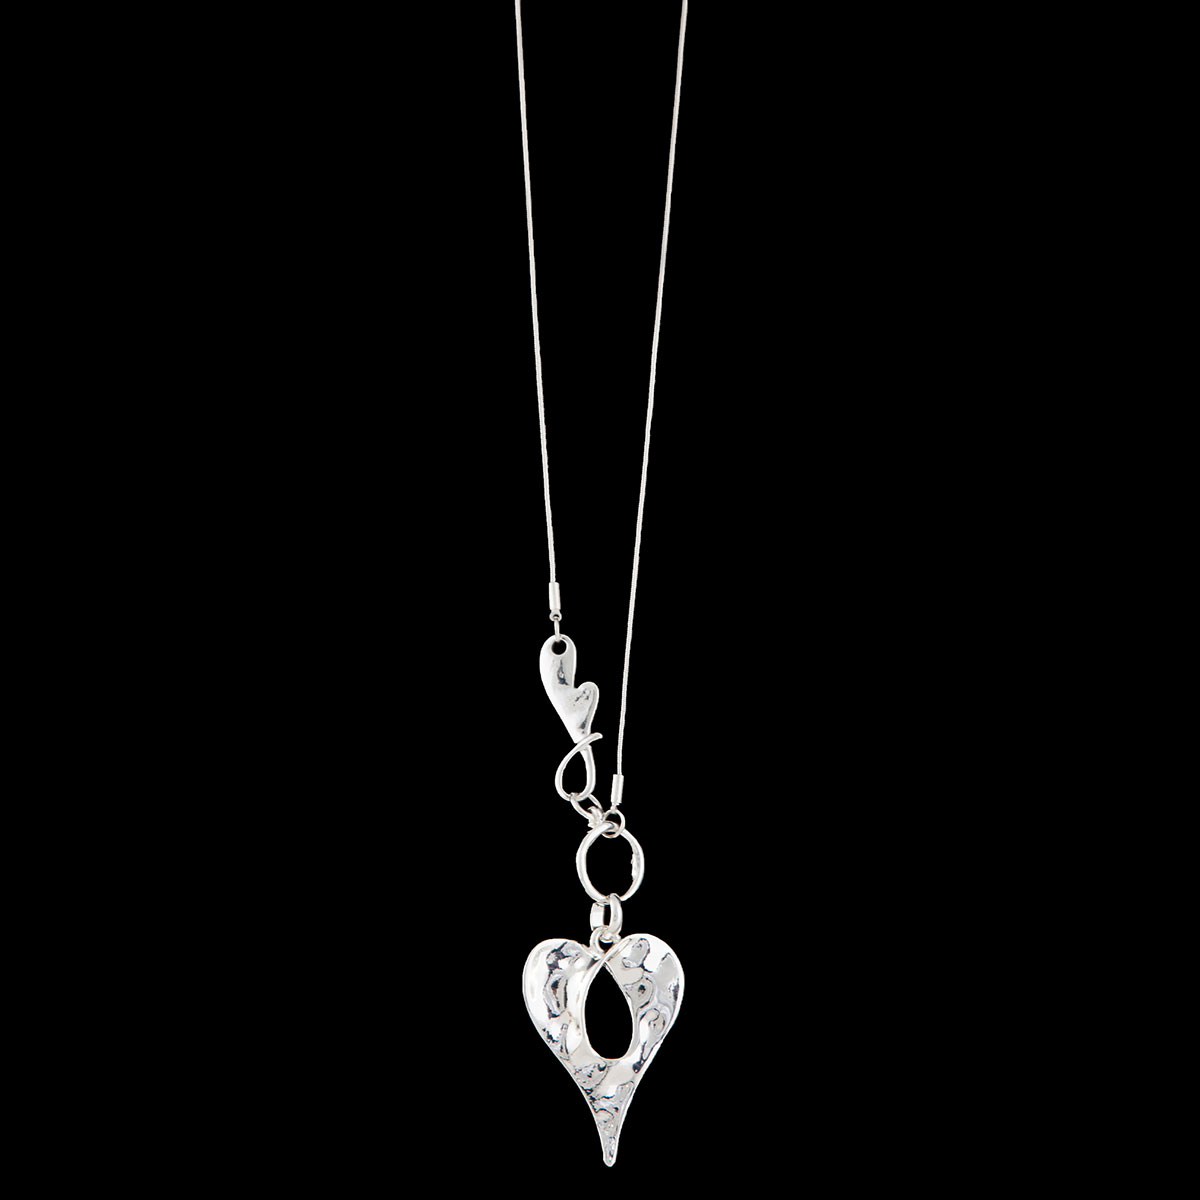 Silver Hammered Silver Double Heart on Chain Necklace